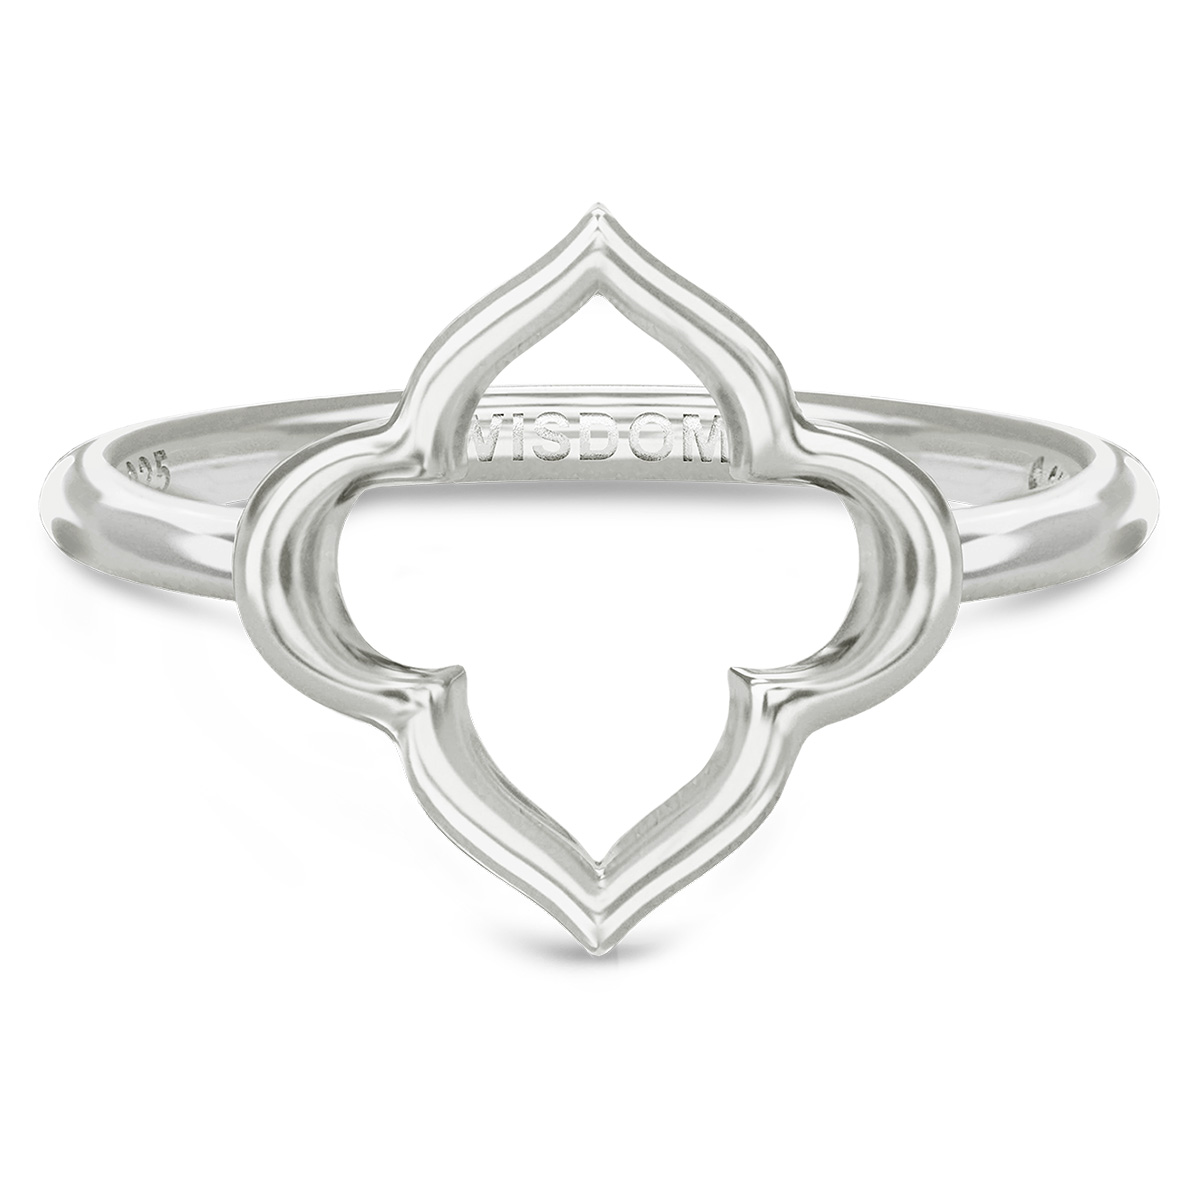 Image of   Spinning Jewelry ring - Aura Wisdom - Rhodineret sterlingsølv